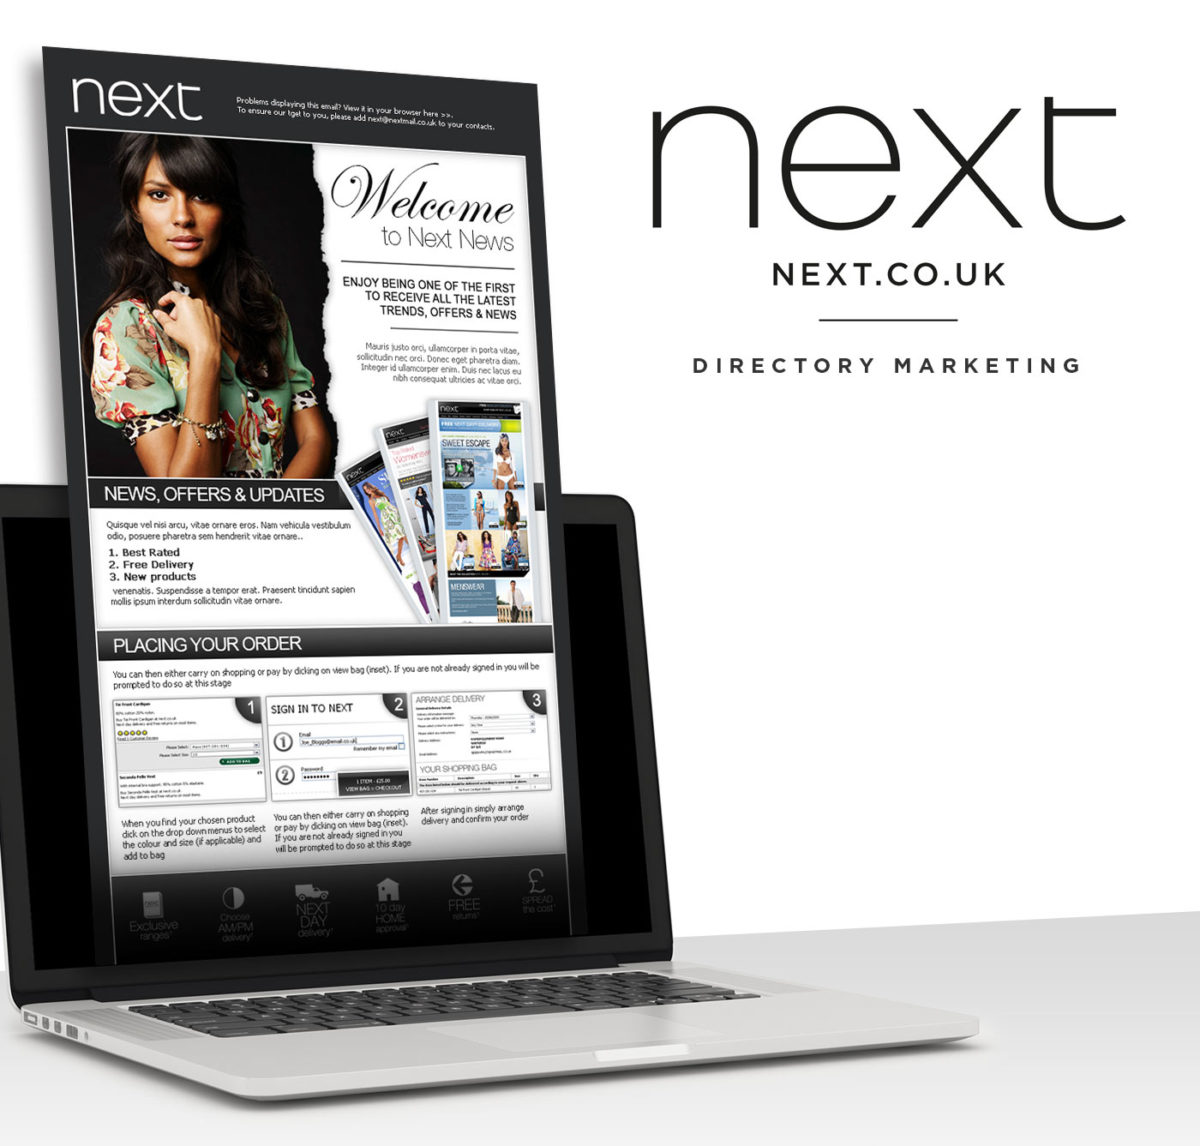 an overview of next plc marketing essay The assignment has been split up into two tasks, firstly to analyse and evaluate next plc, then secondly suggest any ways in which their marketing performance can be improved for future success my first step is to get an overview of next plc as a company, how it started, the market sector it operates in and its past and present performance.